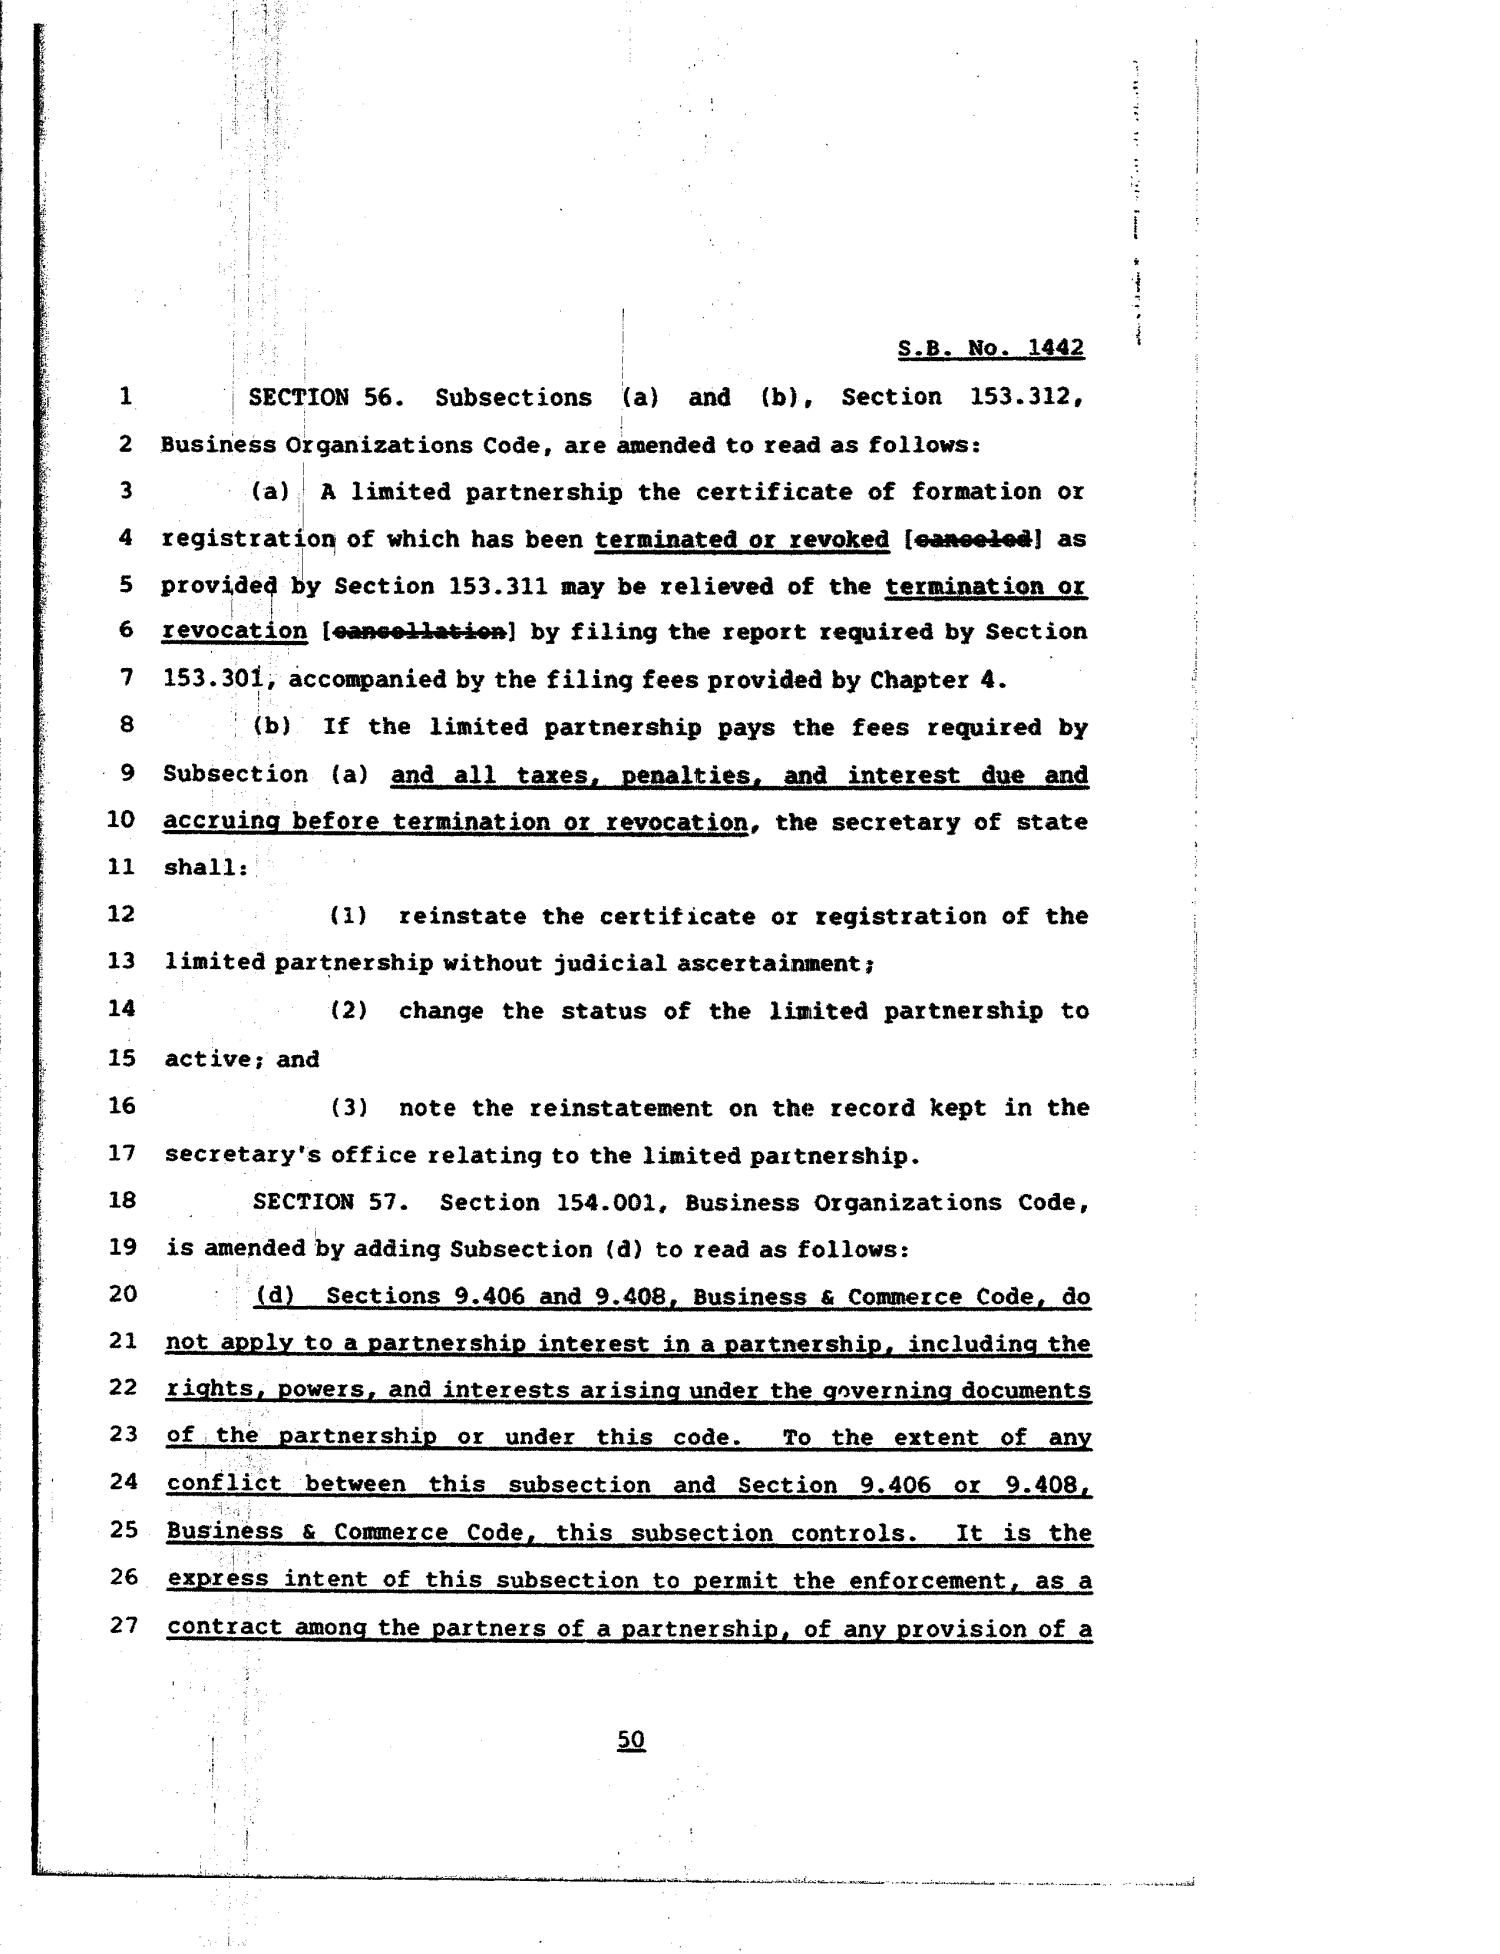 81st Texas Legislature, Regular Session, Senate Bill 1442, Chapter 84                                                                                                      [Sequence #]: 50 of 64